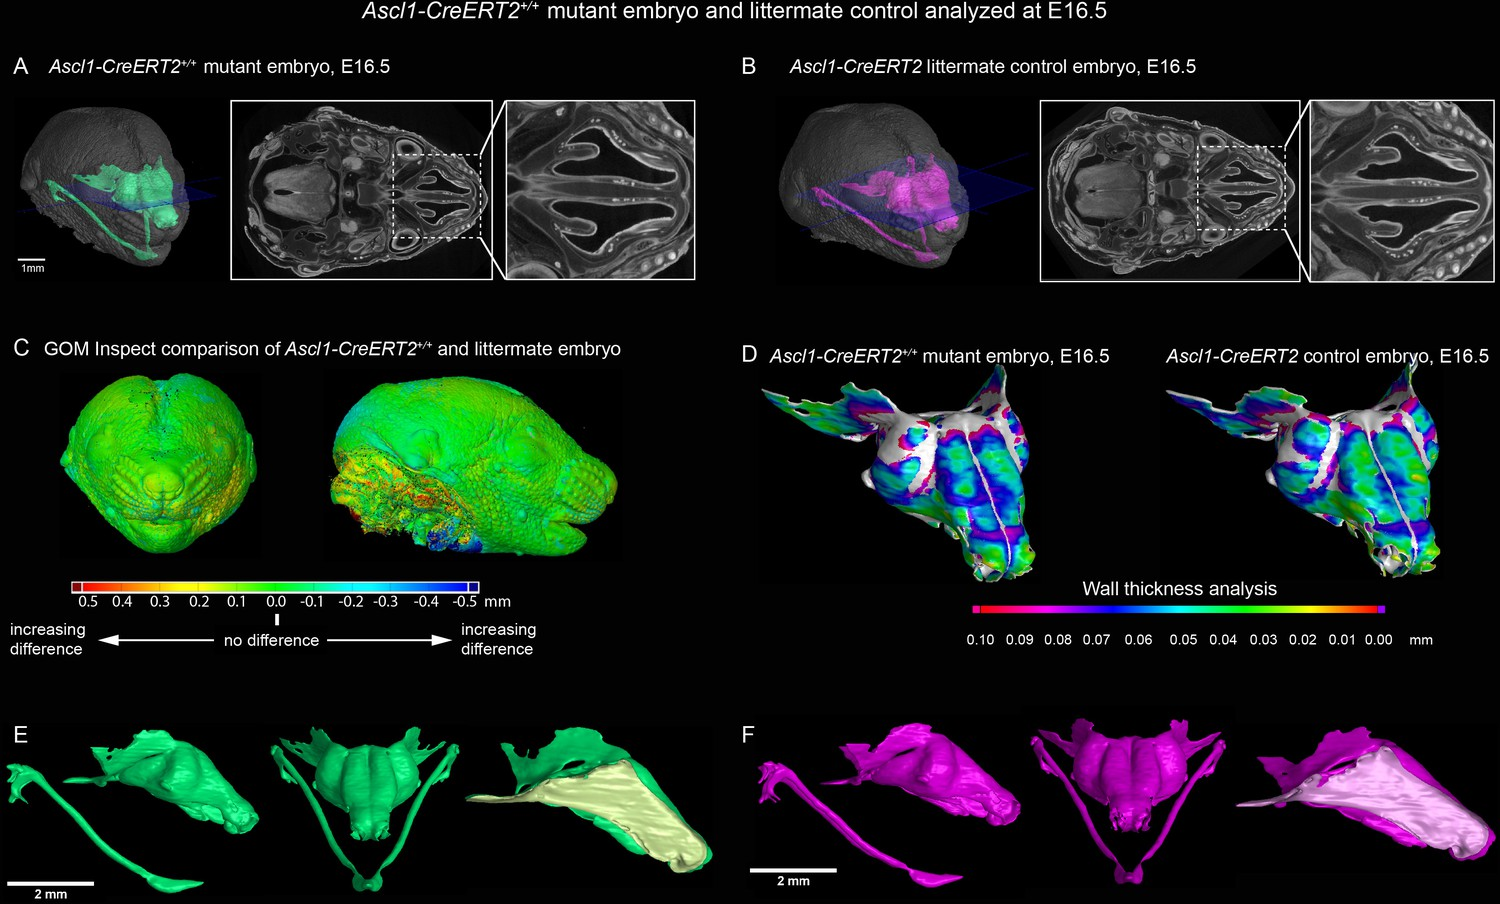 Signals from the brain and olfactory epithelium control